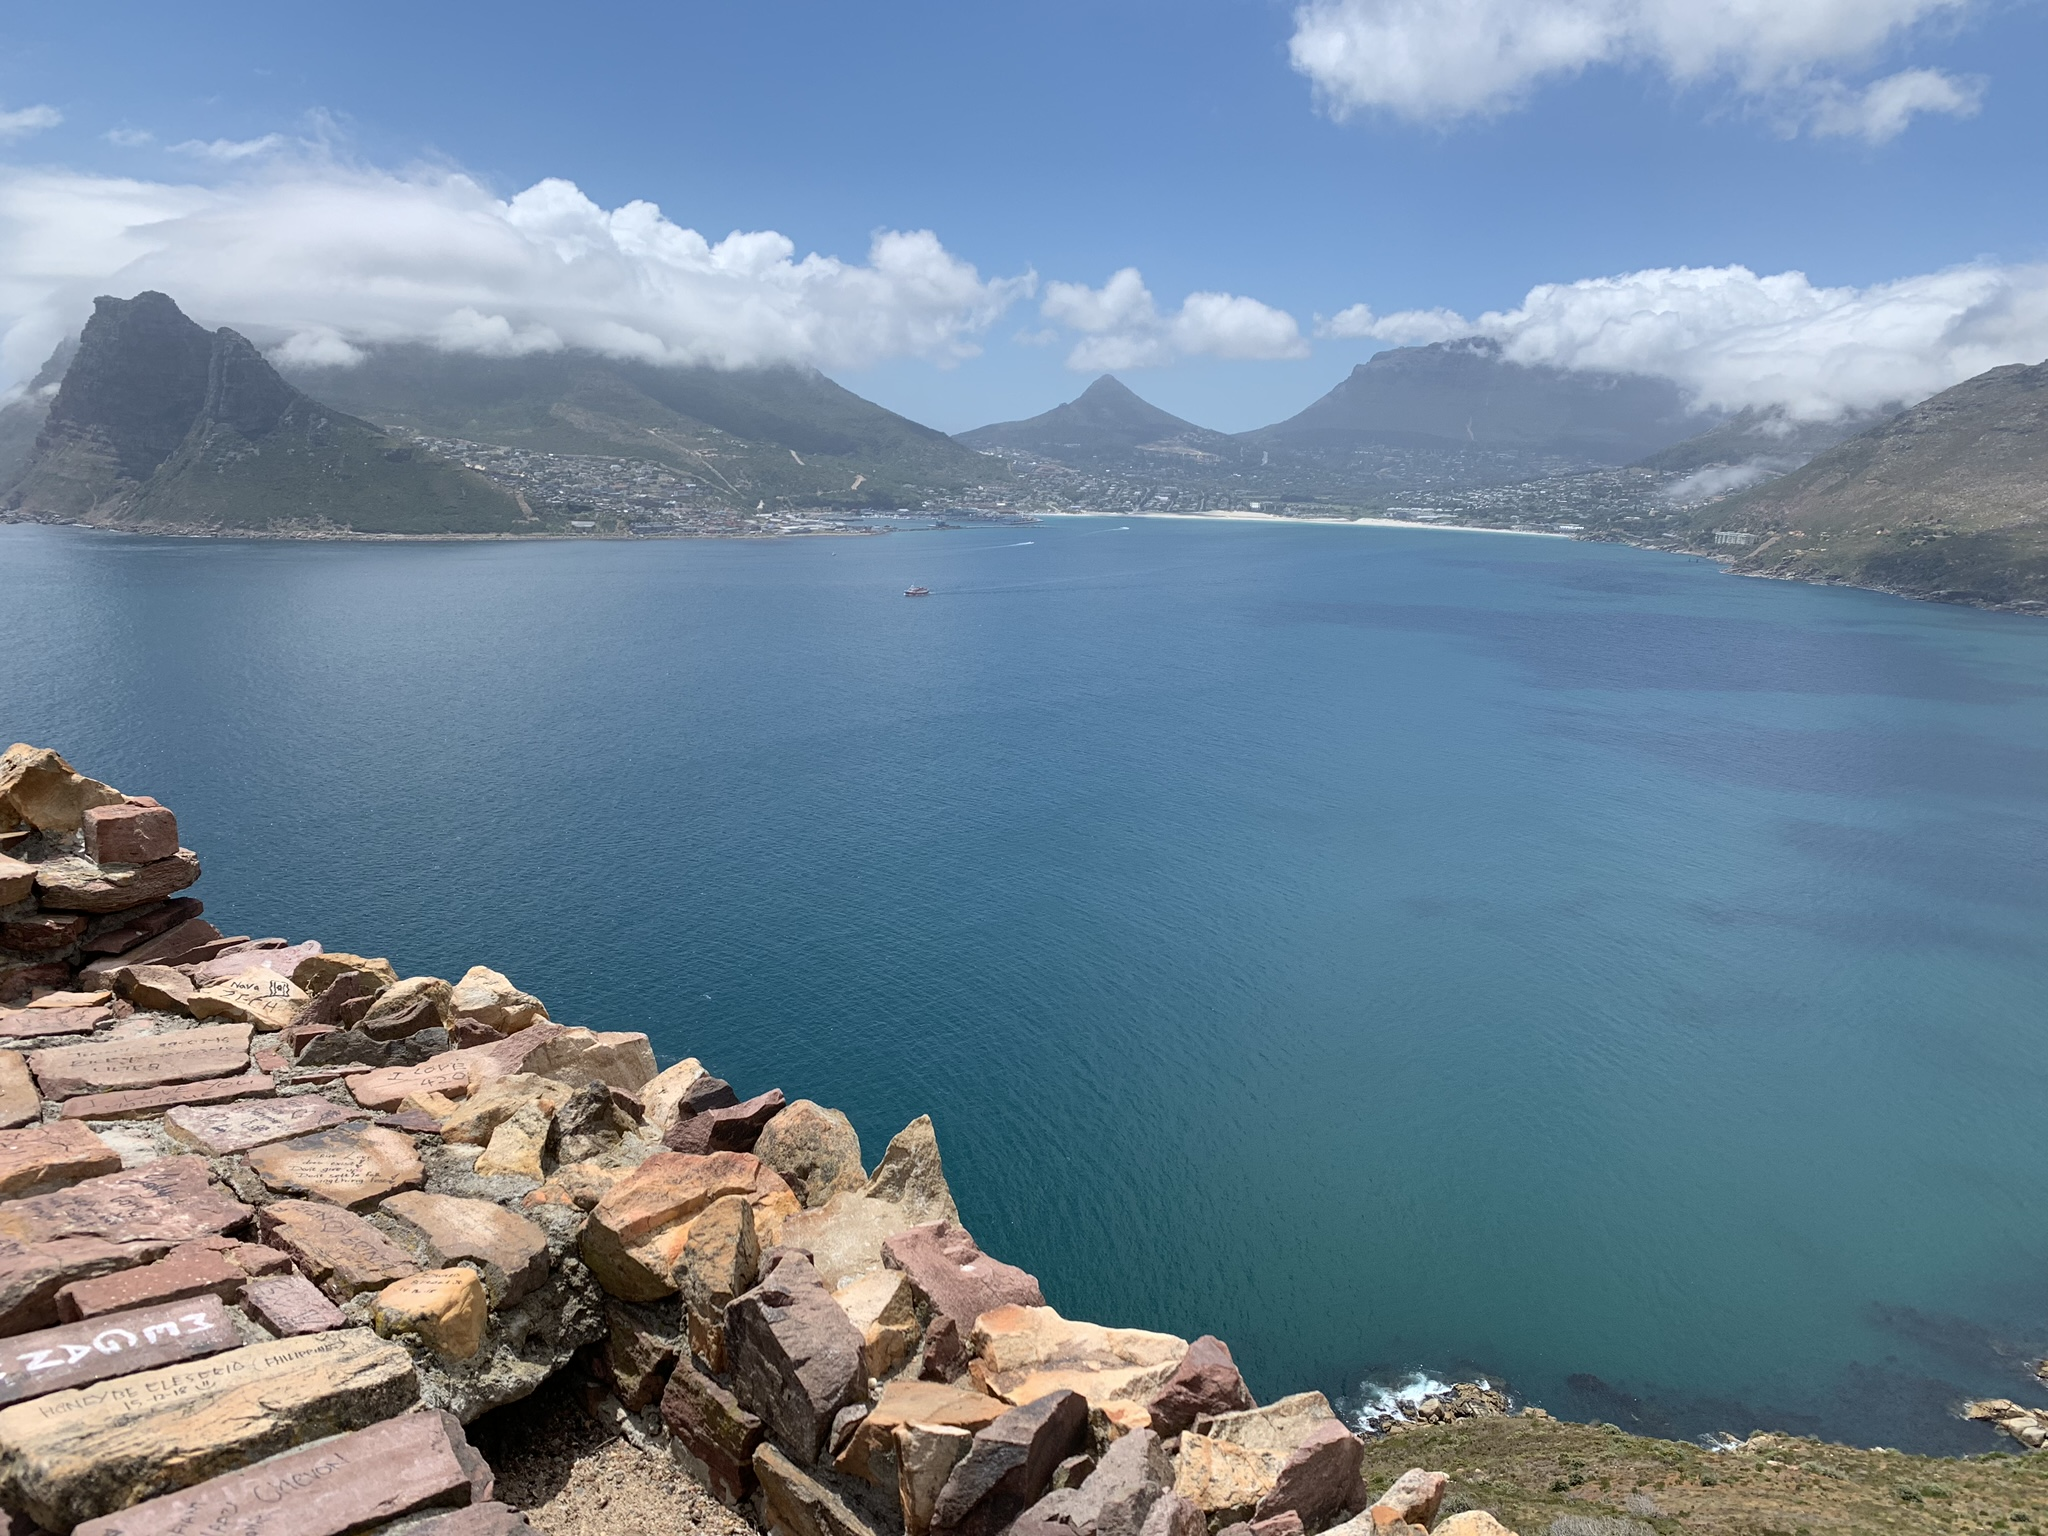 Arrival in Cape Town, 3SOMS, The Pav and Getting my Feet Wet  – January 1-9